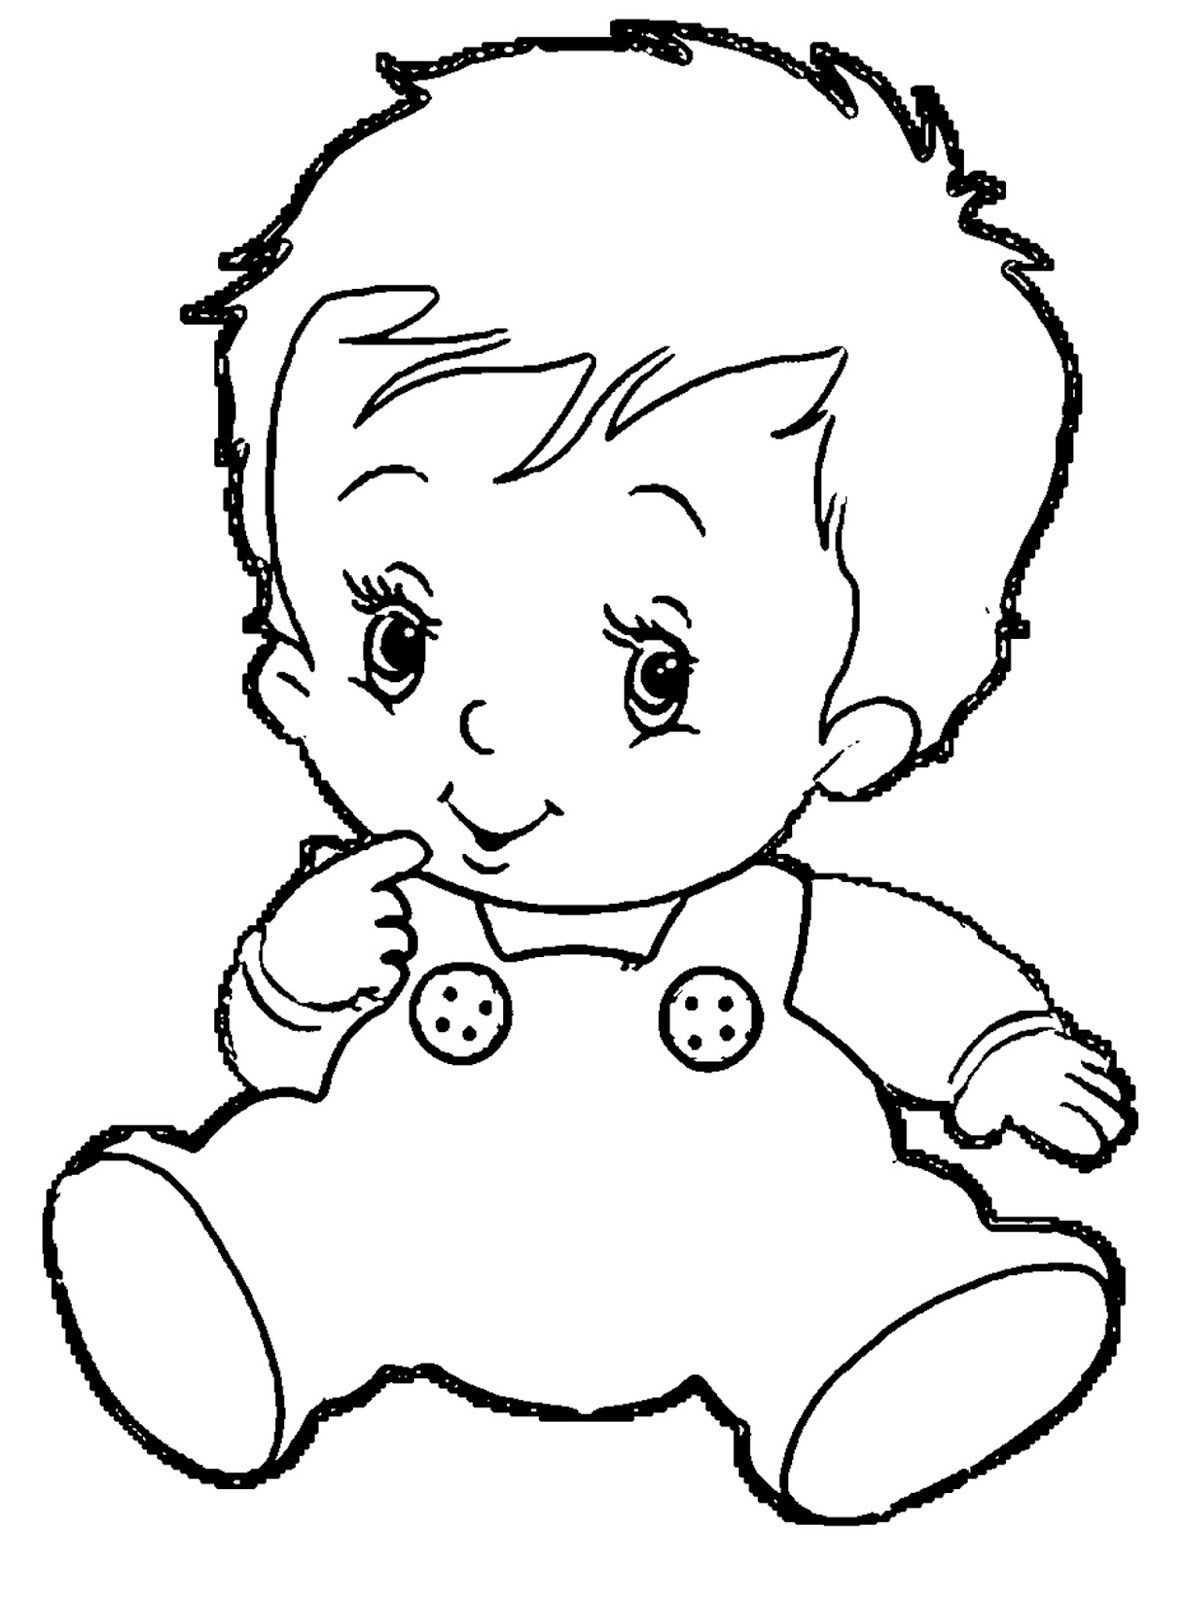 New Baby Clipart Black And White Gallery Digital Newborn Toys.